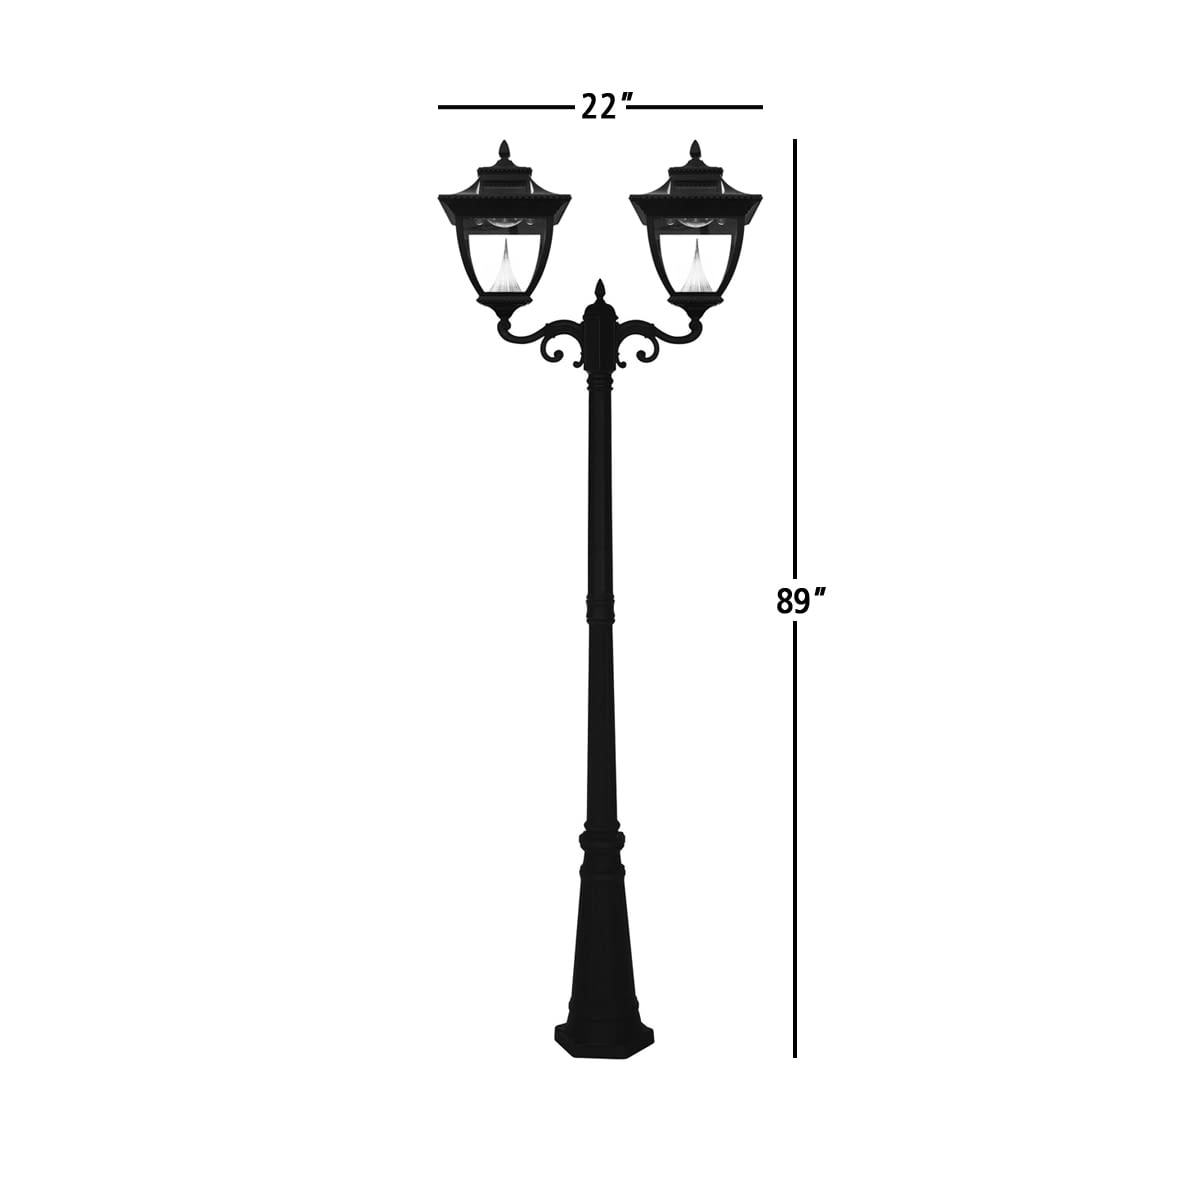 Pagoda Solar Lamp Post by Gama Sonic GS-104D Measurements